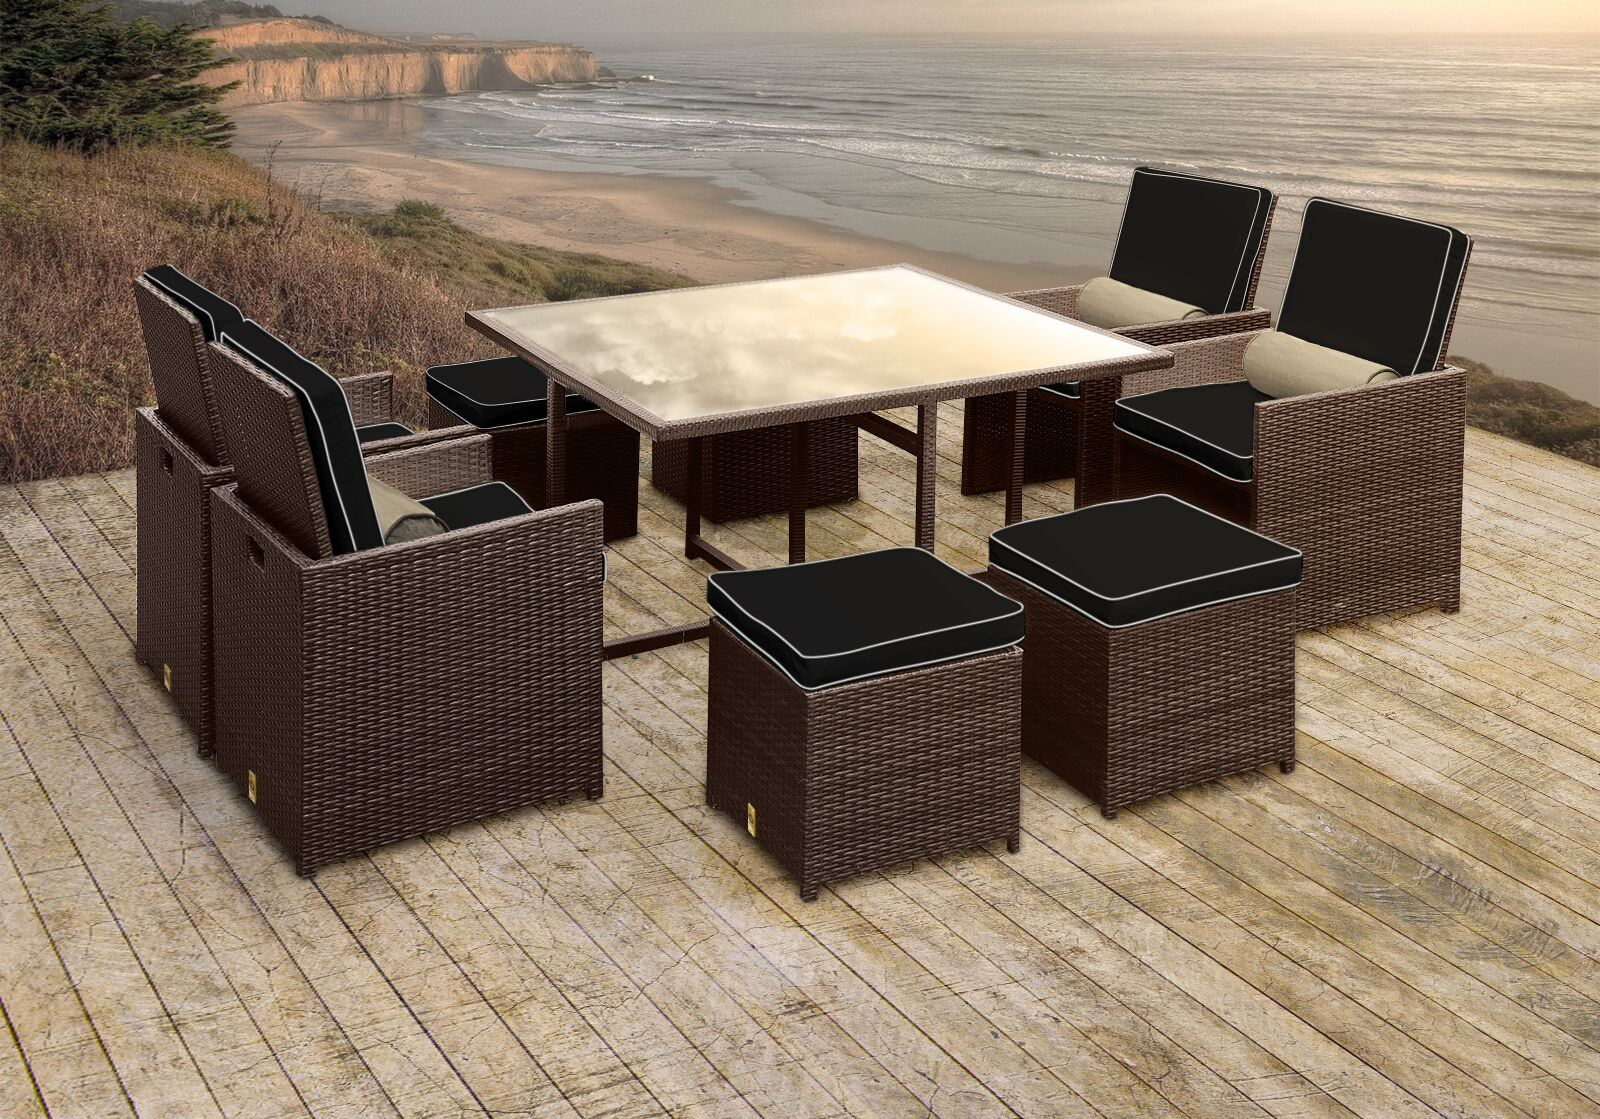 Stella II Patio Rattan 9 Piece Dining Set with Cushions and Cylinder Toss Pillows Cushion Color: Black/White